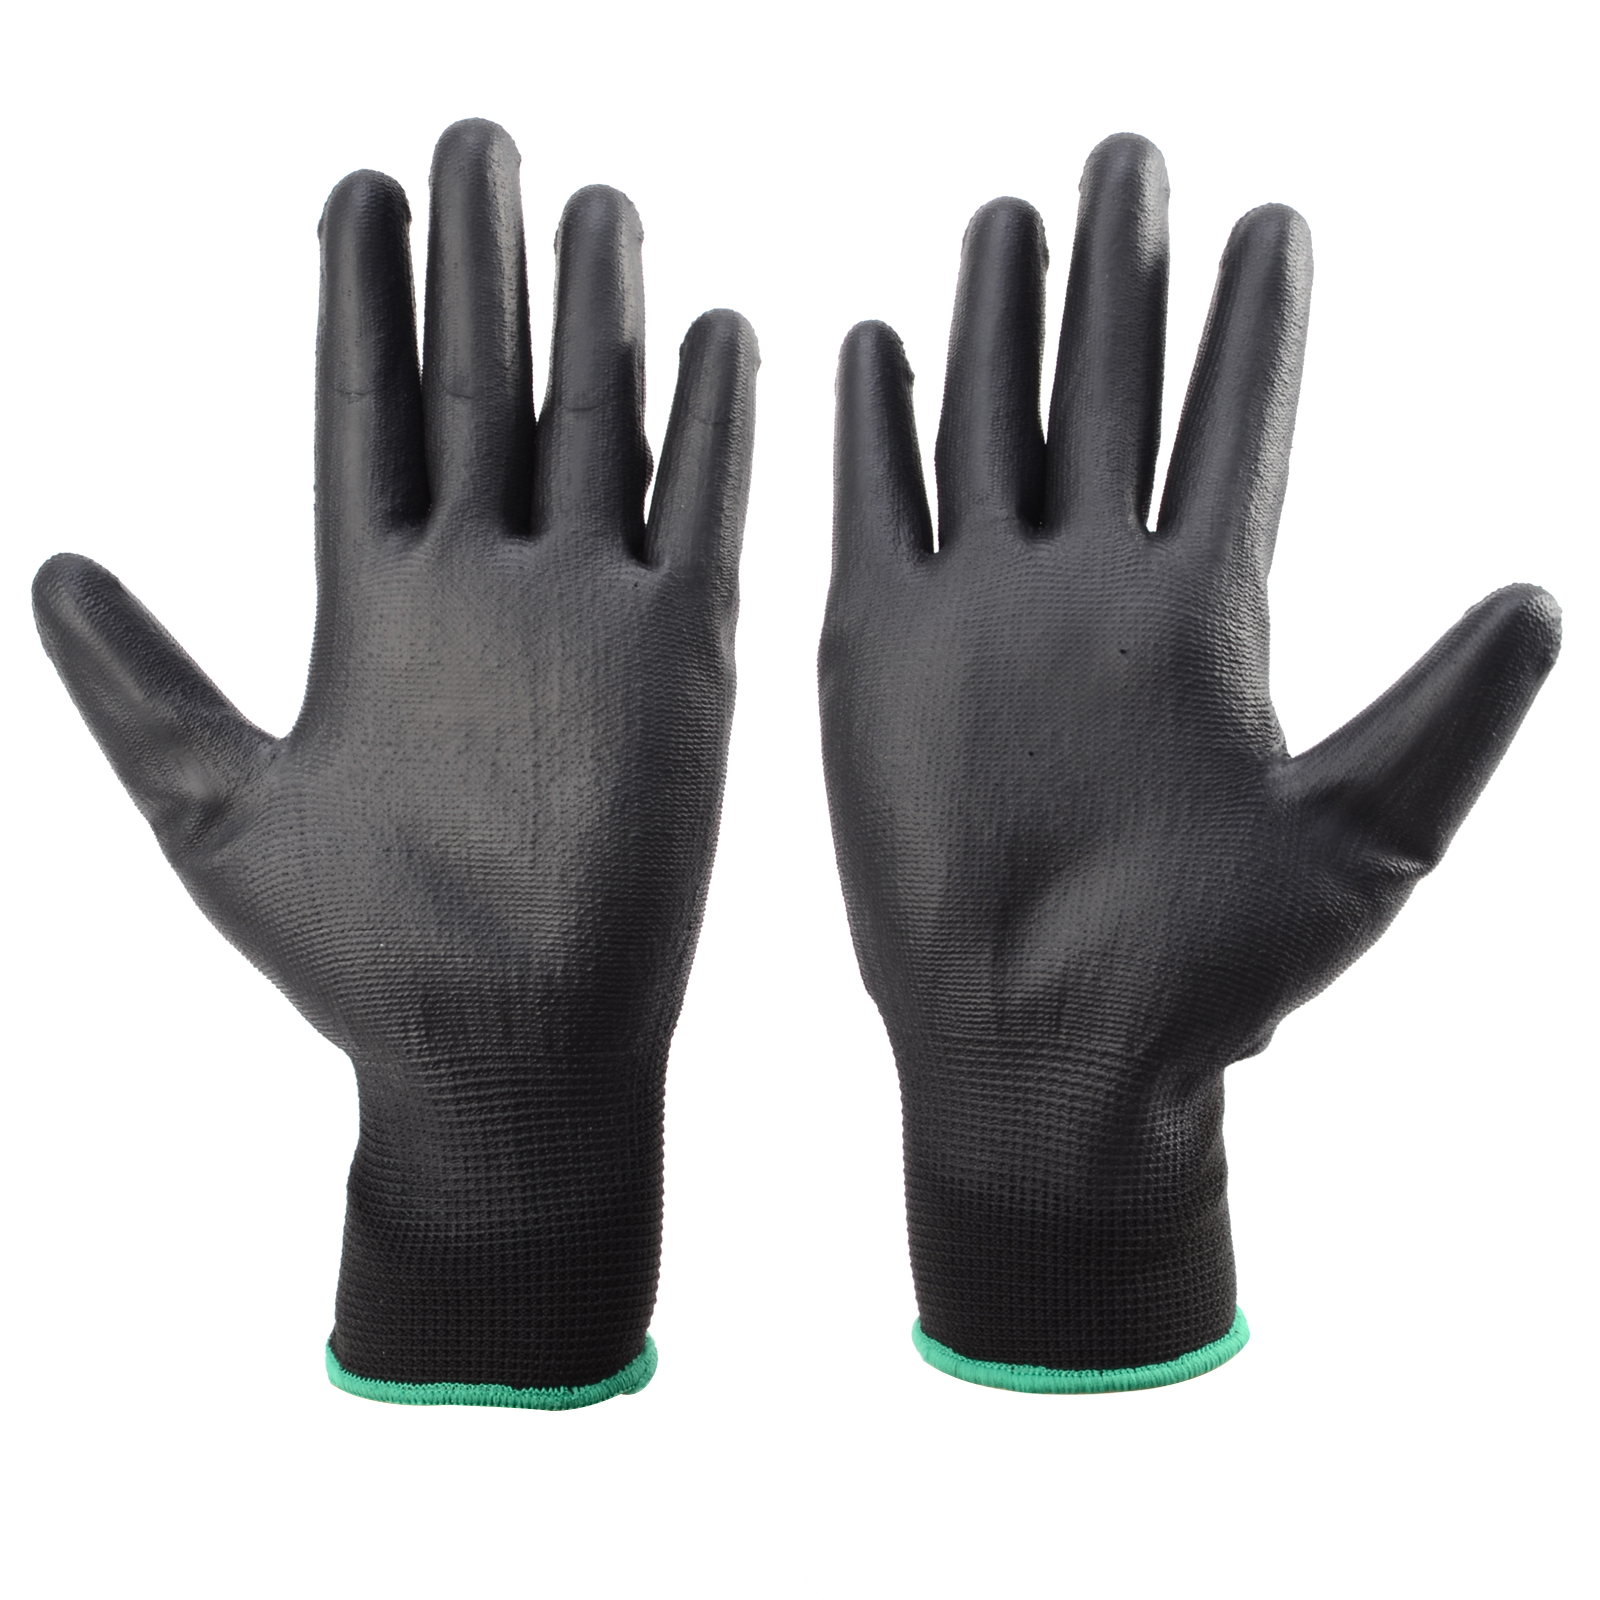 Black gardening gloves - These Safety Gloves Are Ideal For Carpenters Component Handling Construction Workers Precision Works Garden Work Refuse Collectors General Assembly